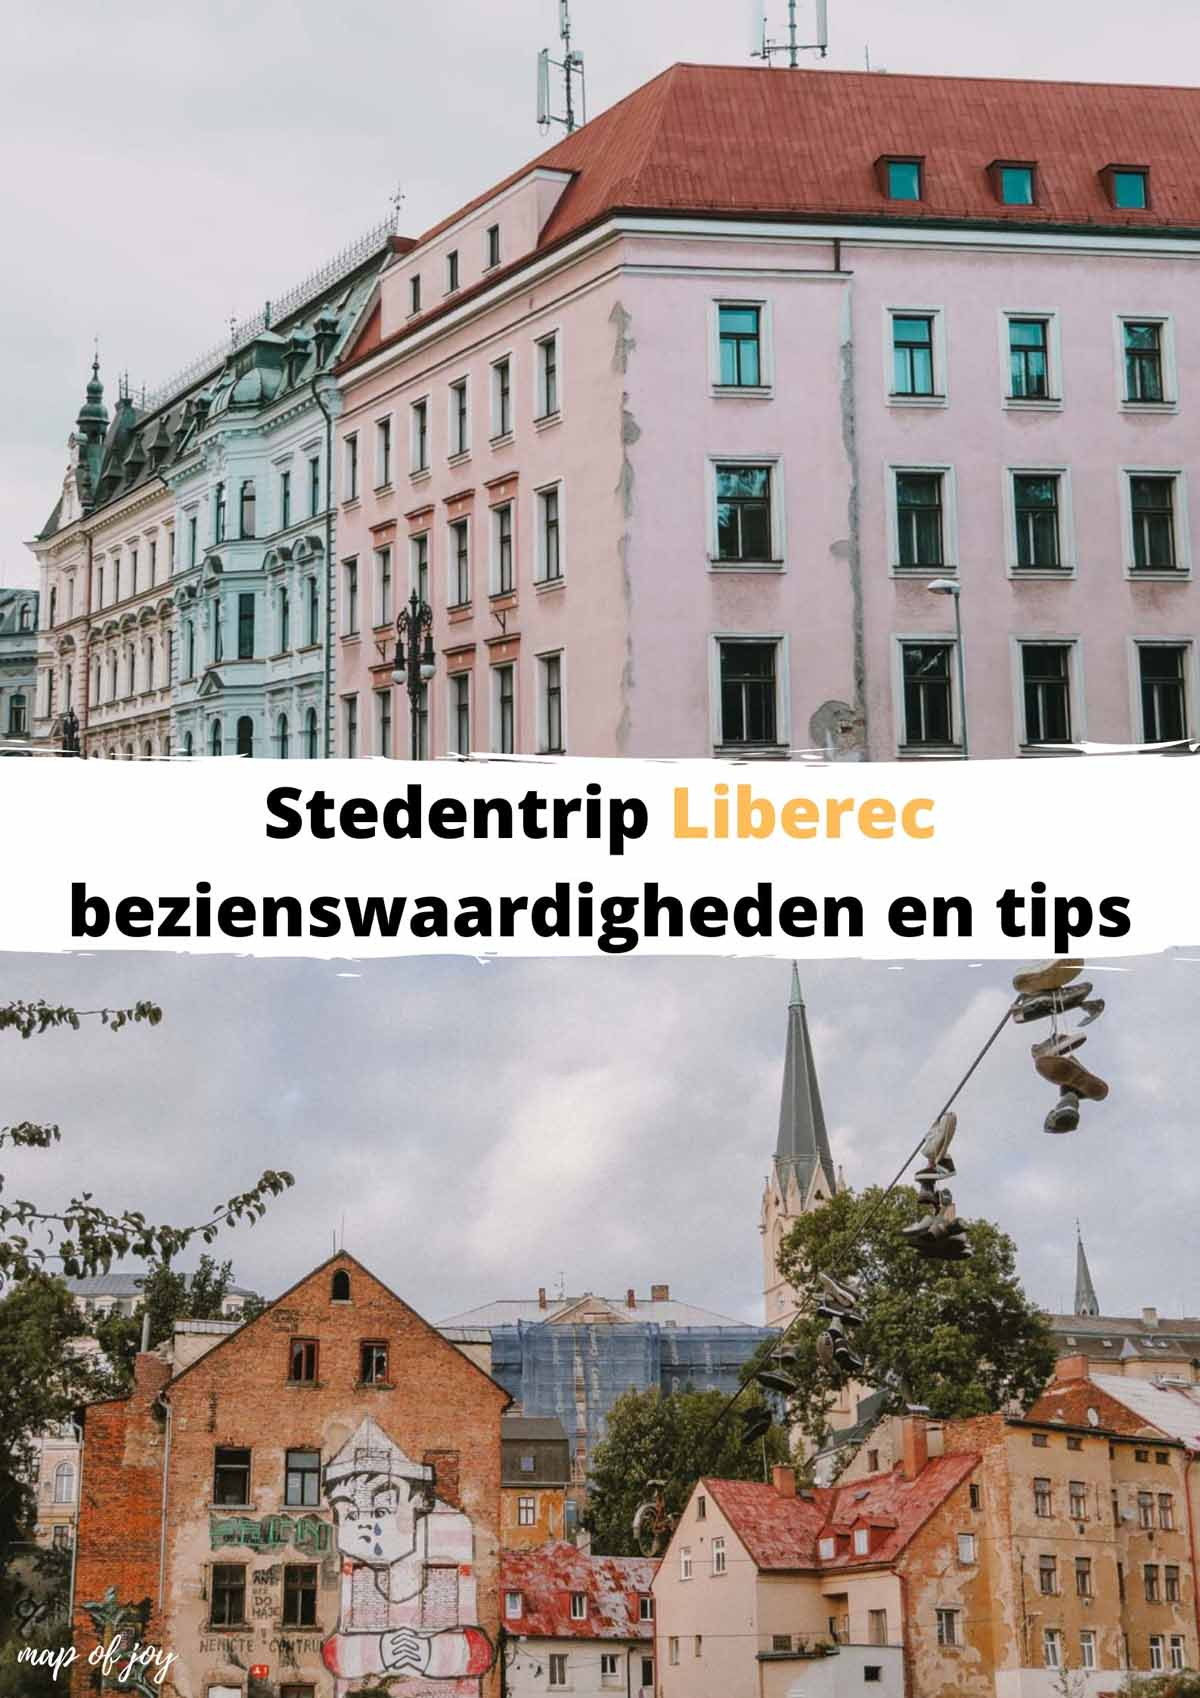 Stedentrip Liberec: bezienswaardigheden en tips - Map of Joy